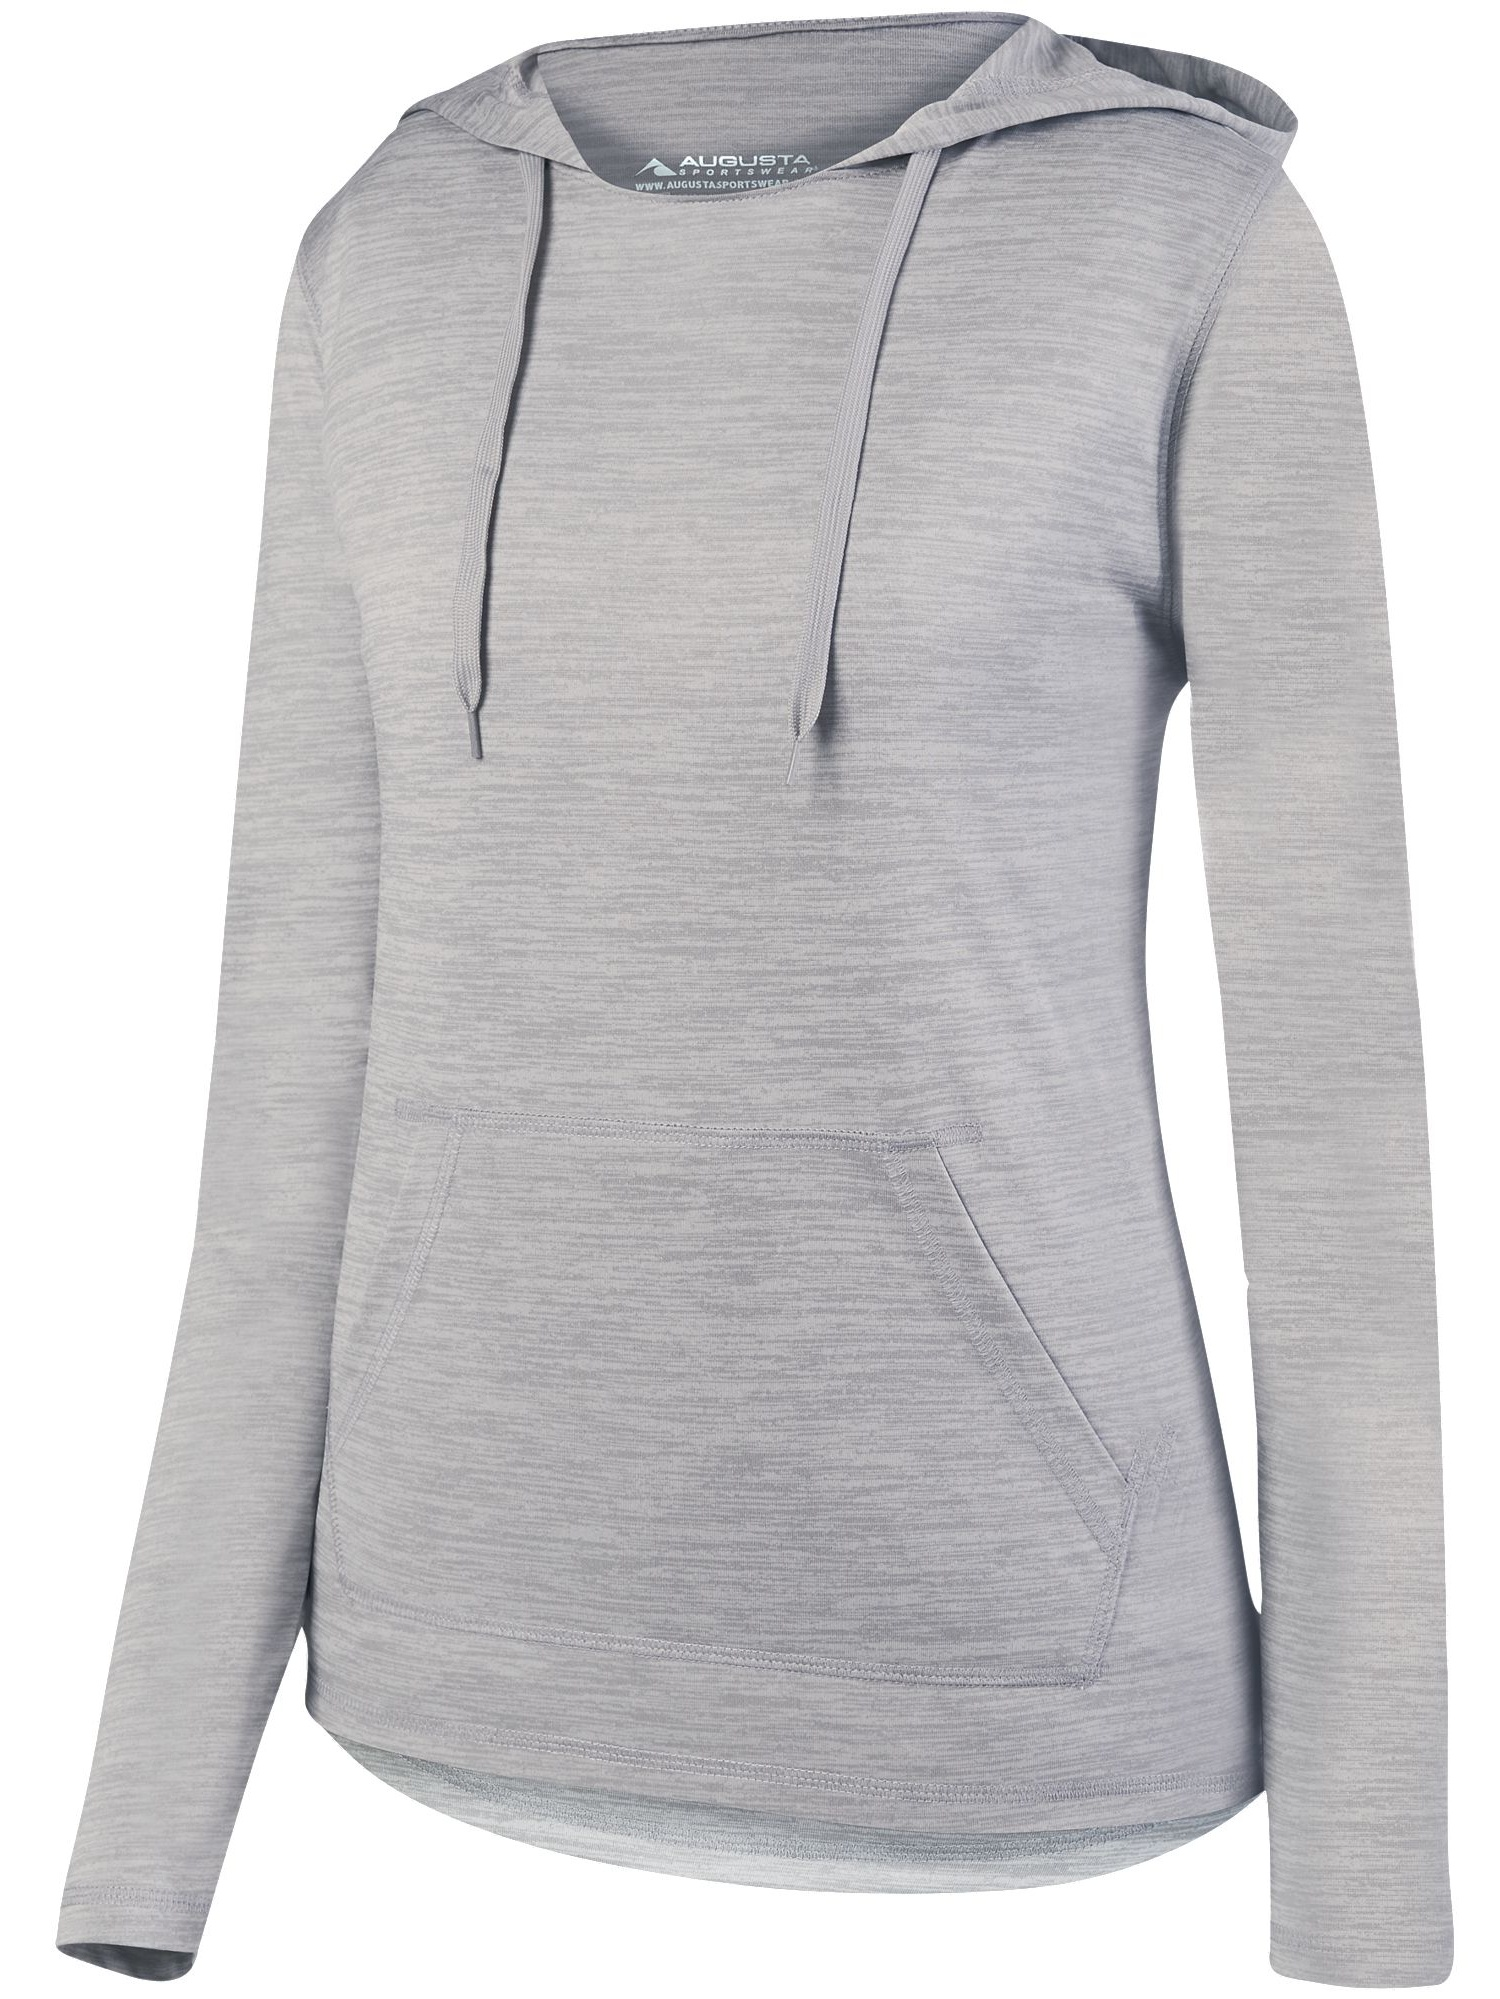 Augusta Sportswear Women's Shadow Tonal Heather Hoody 2907